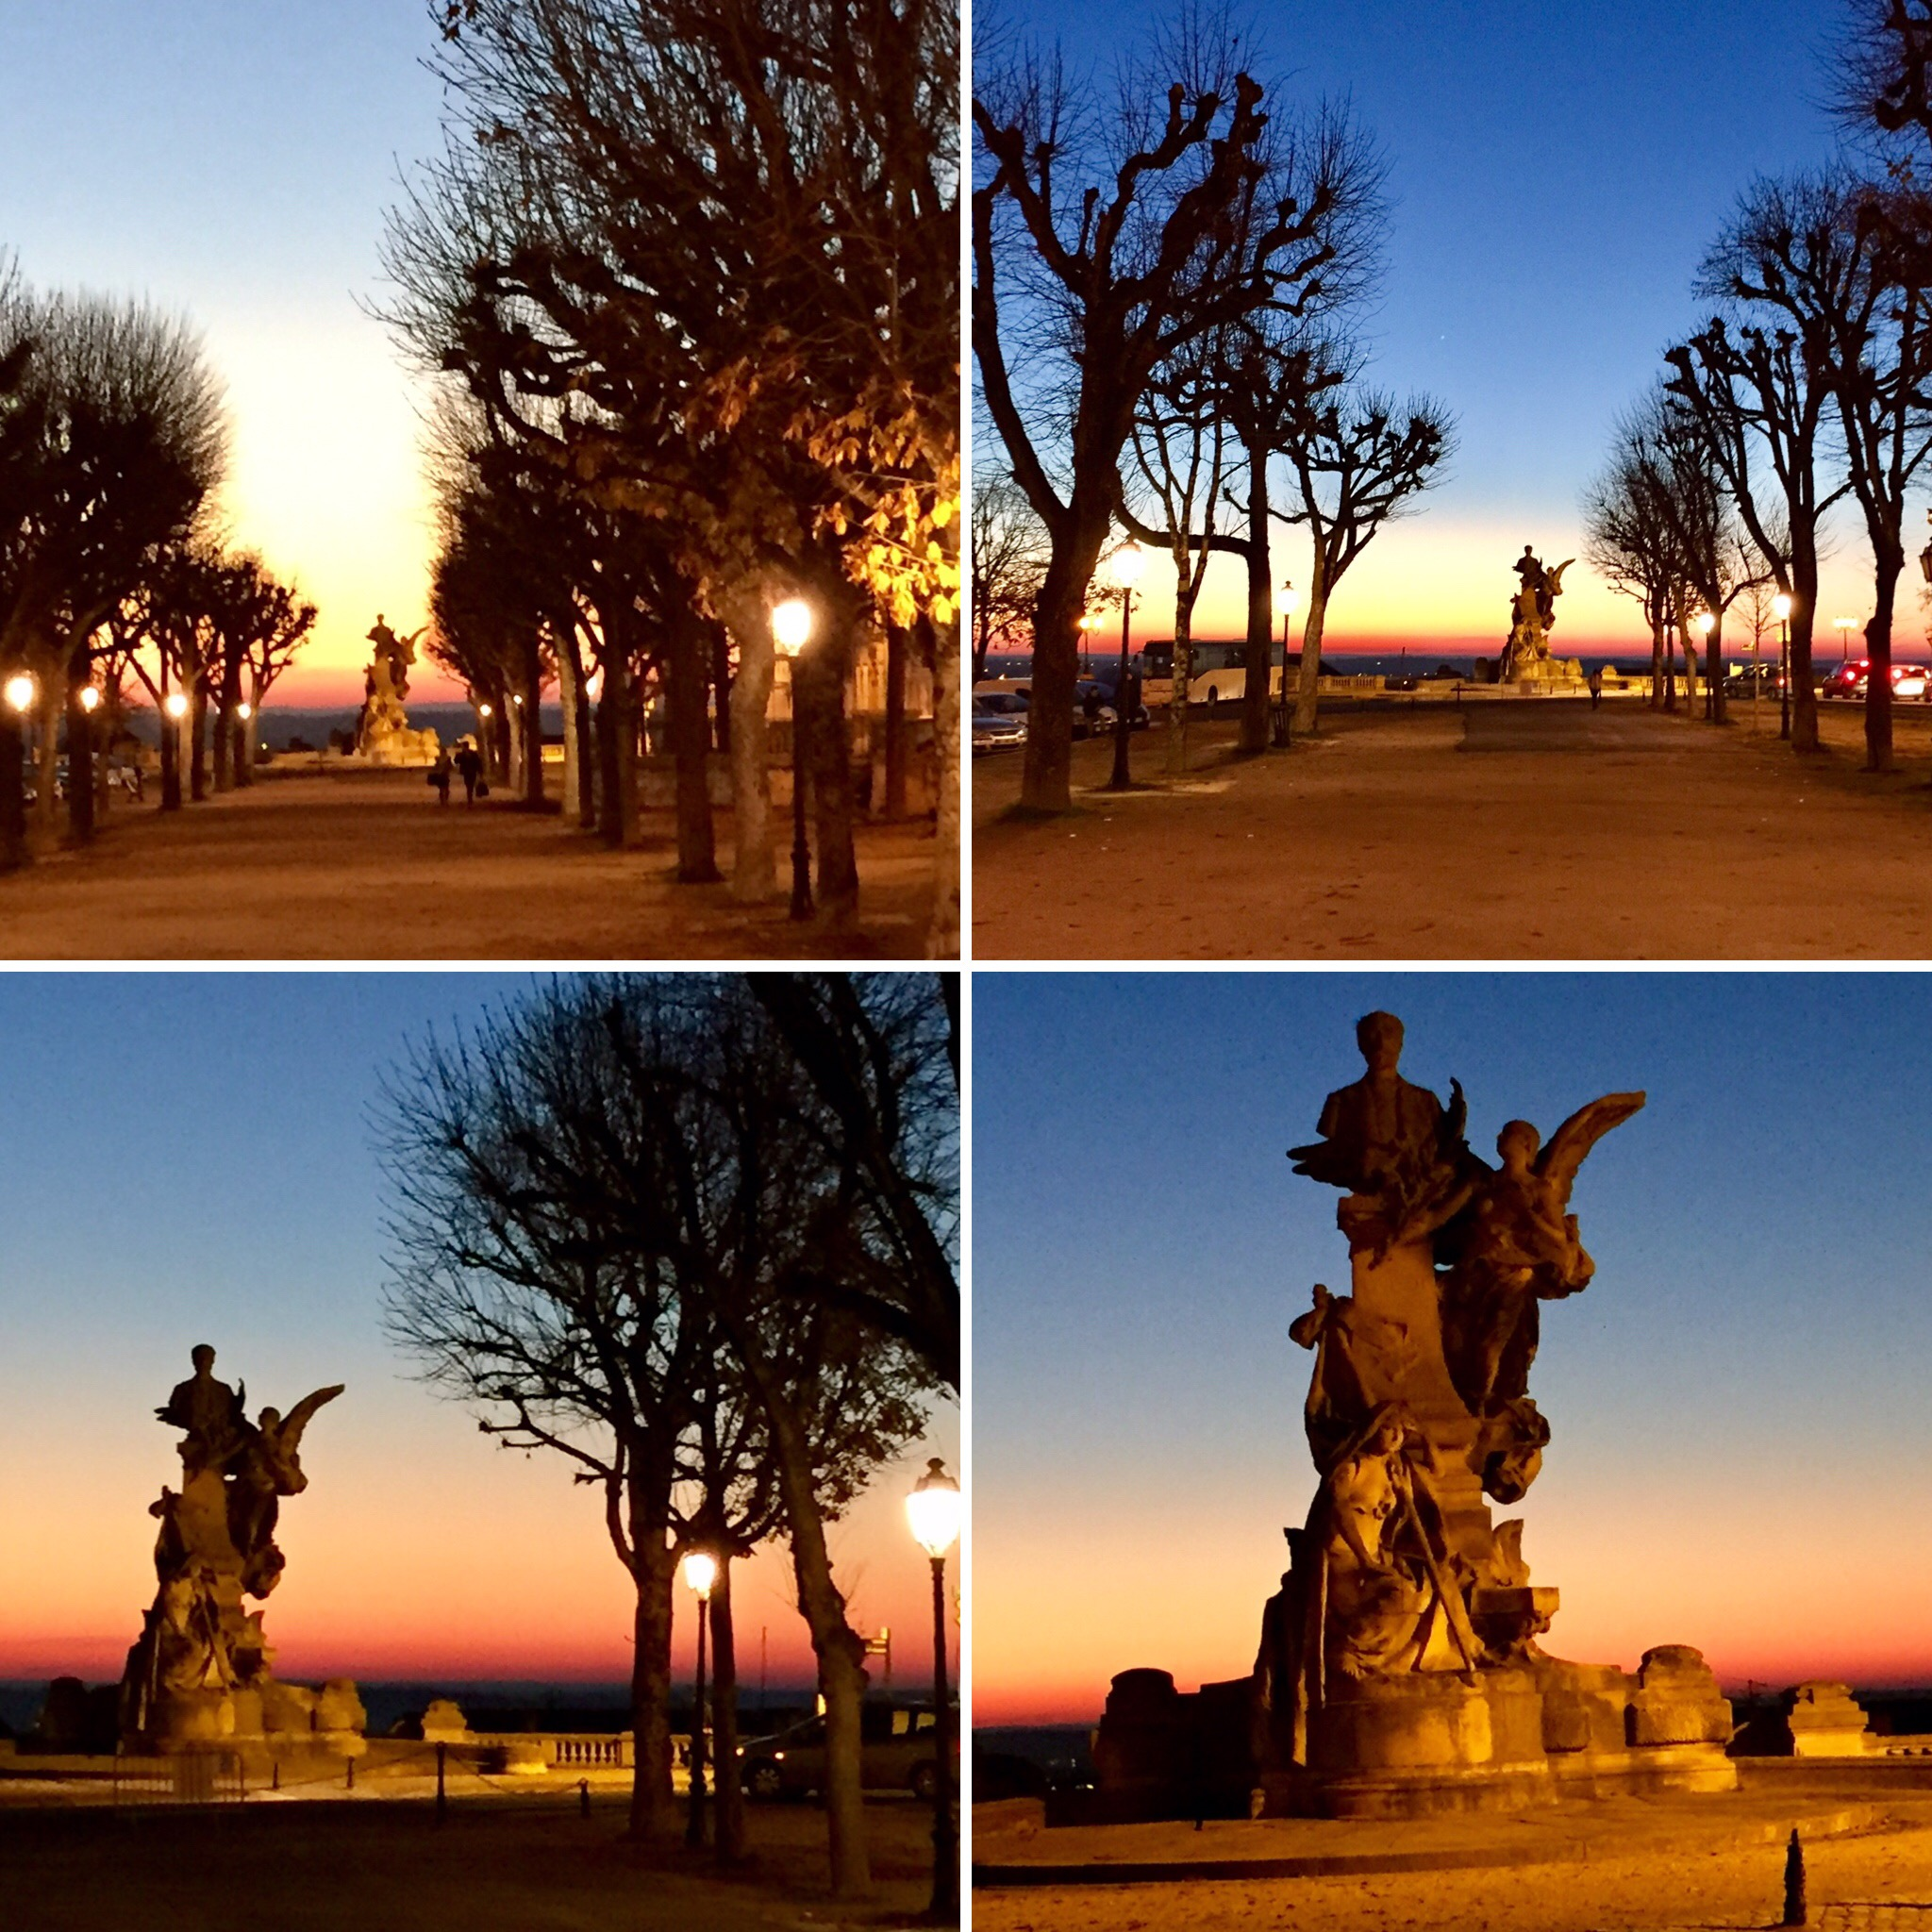 livingincognac - sunset